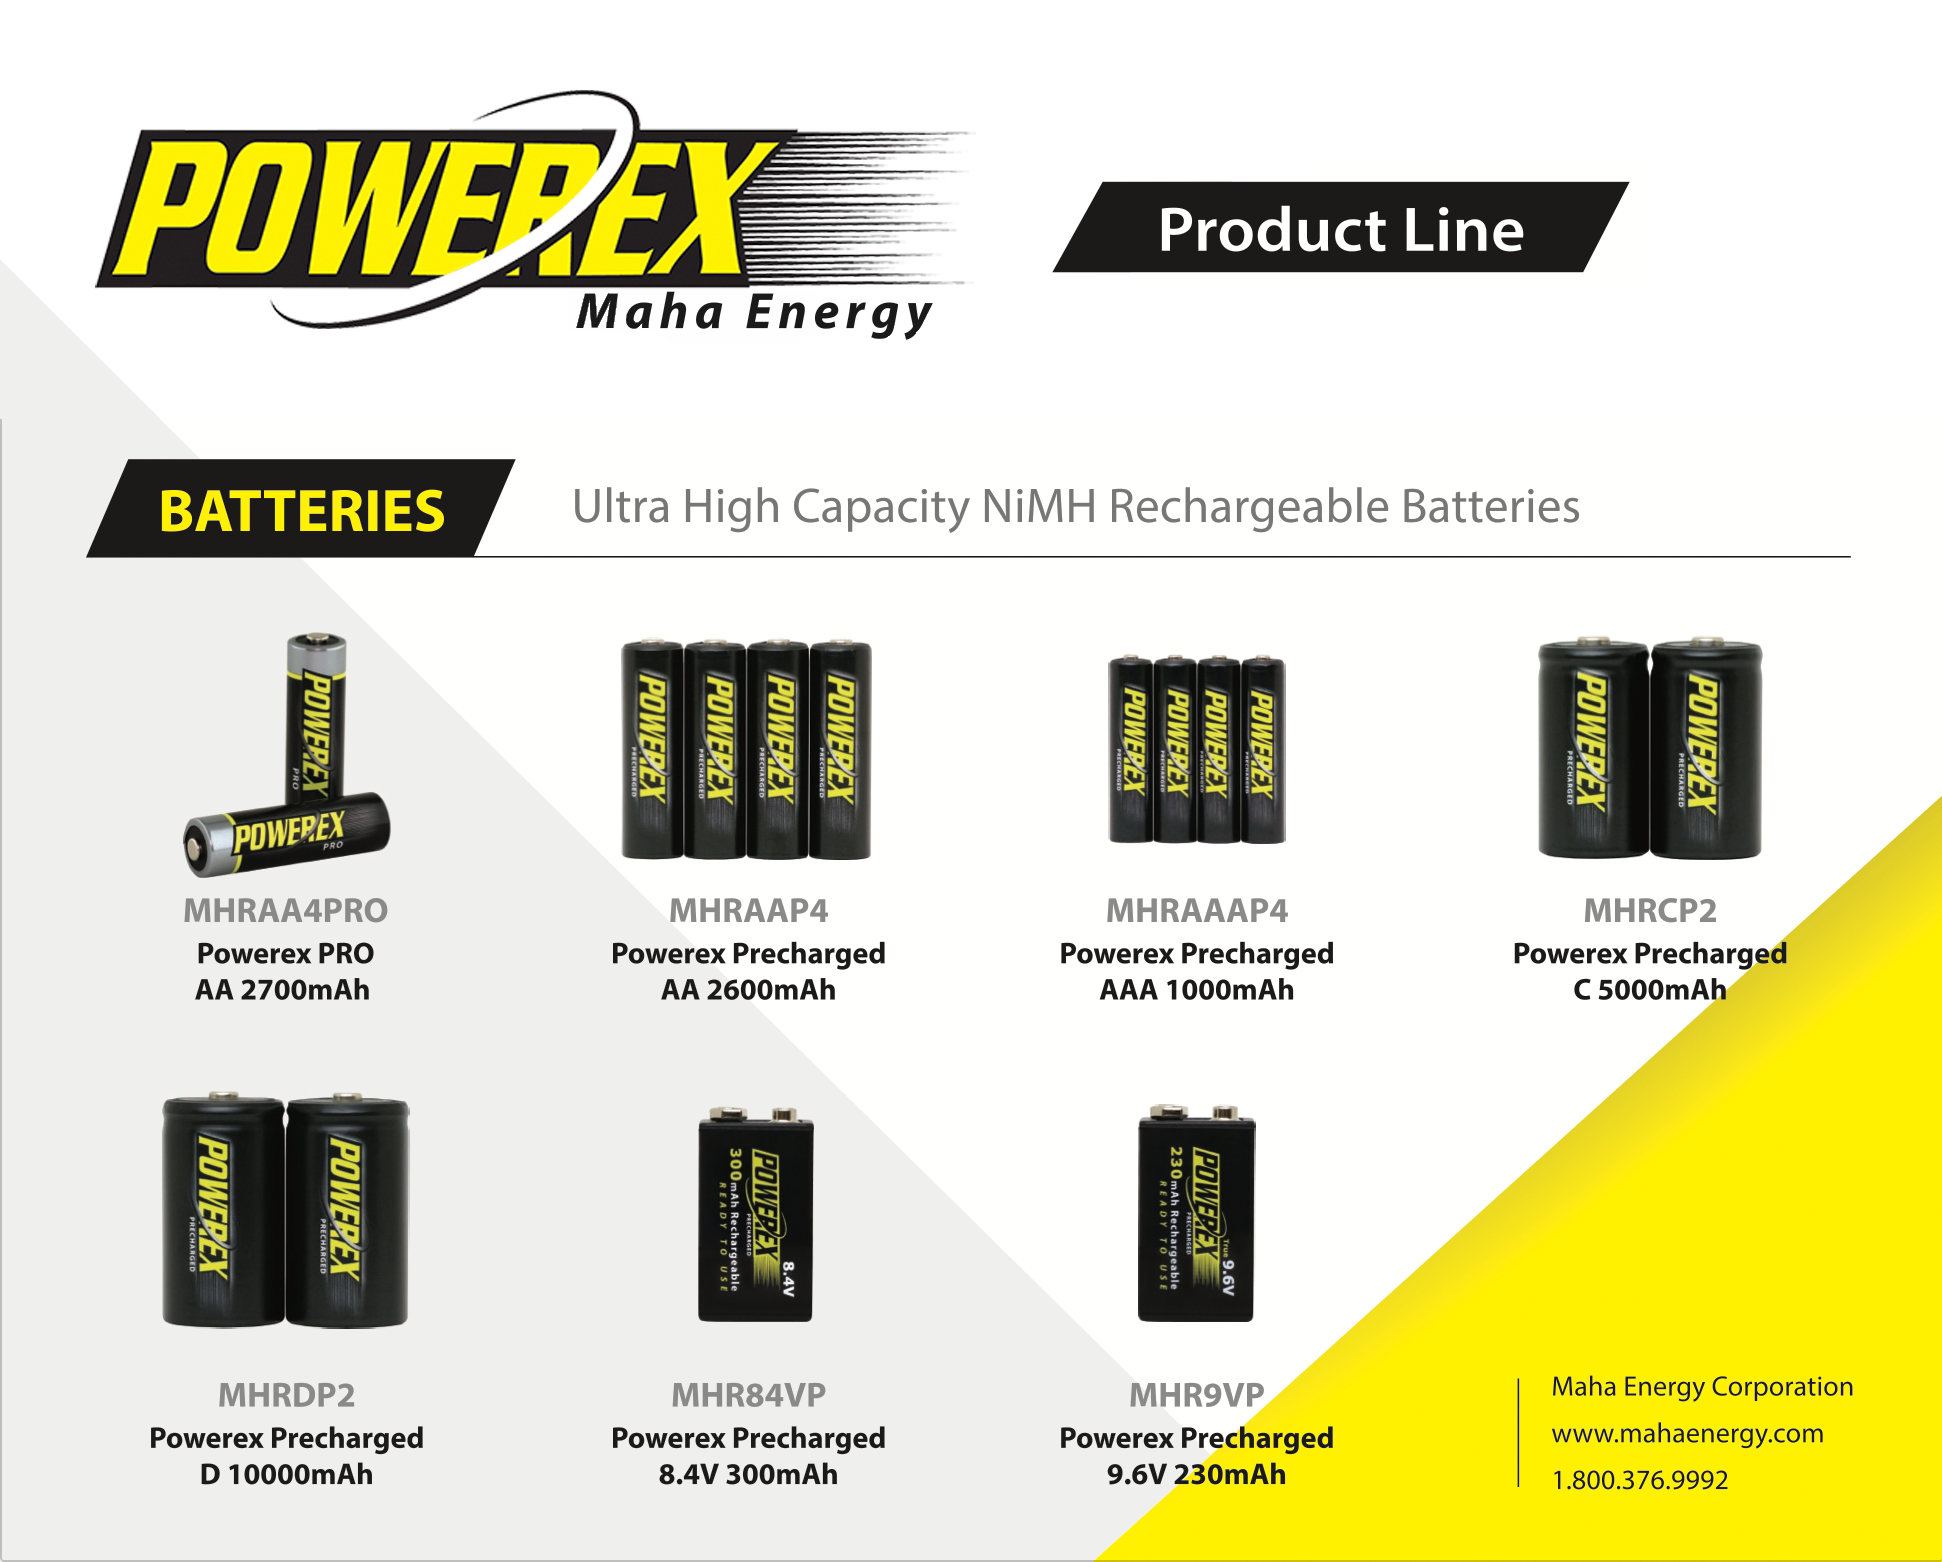 Maha Powerex PRECHARGED - AA Batteries - 2,600mAh 4pack